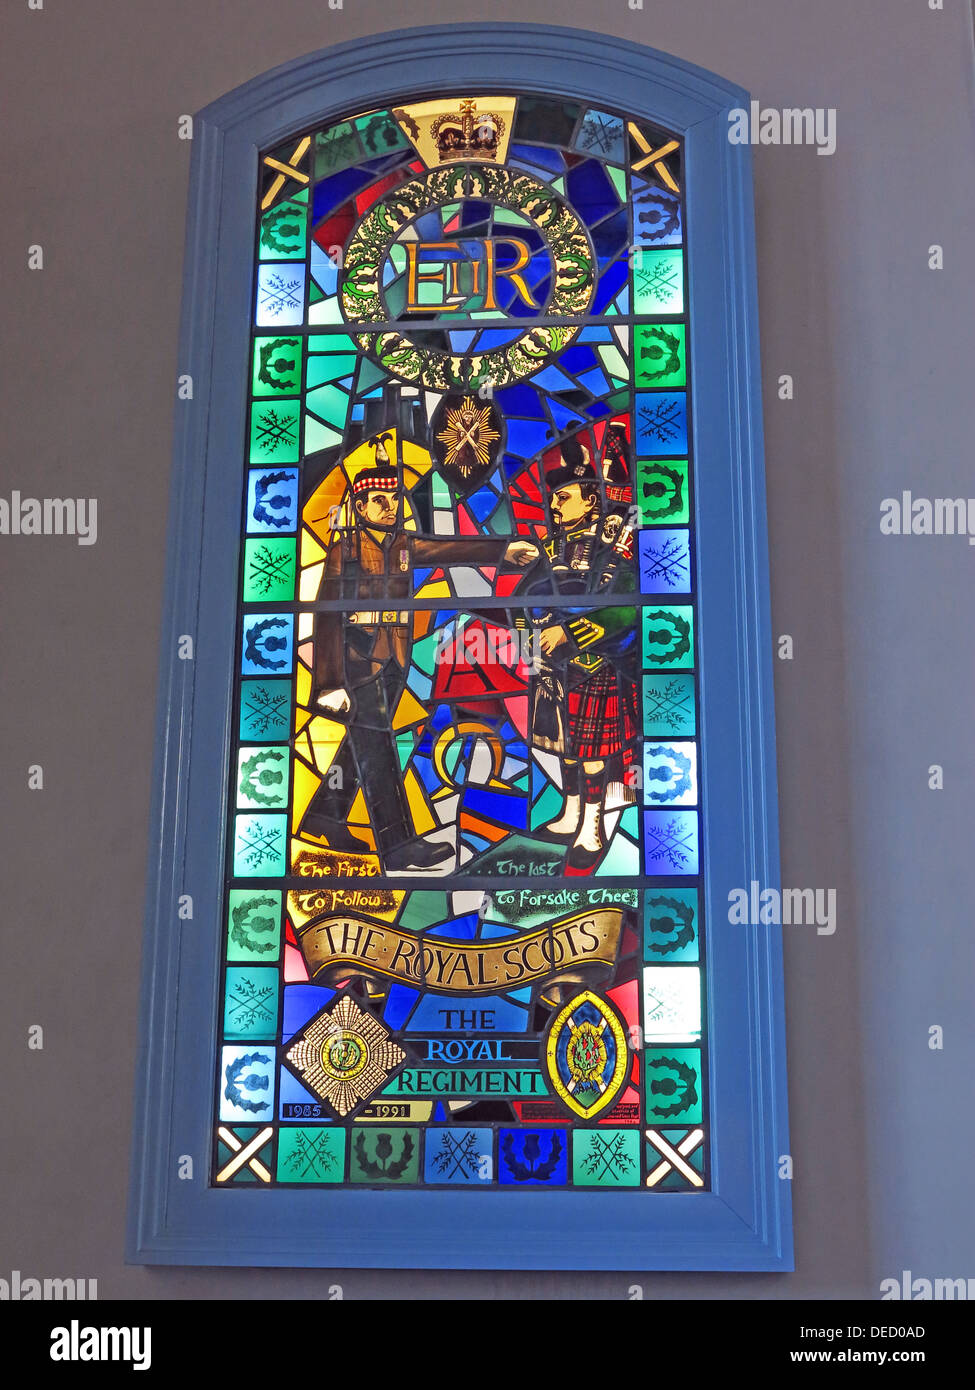 The Royal Regiment window, Canongate Kirk,Edinburgh,Scotland,UK 'The first to follow, The last to forsake thee' - Stock Image